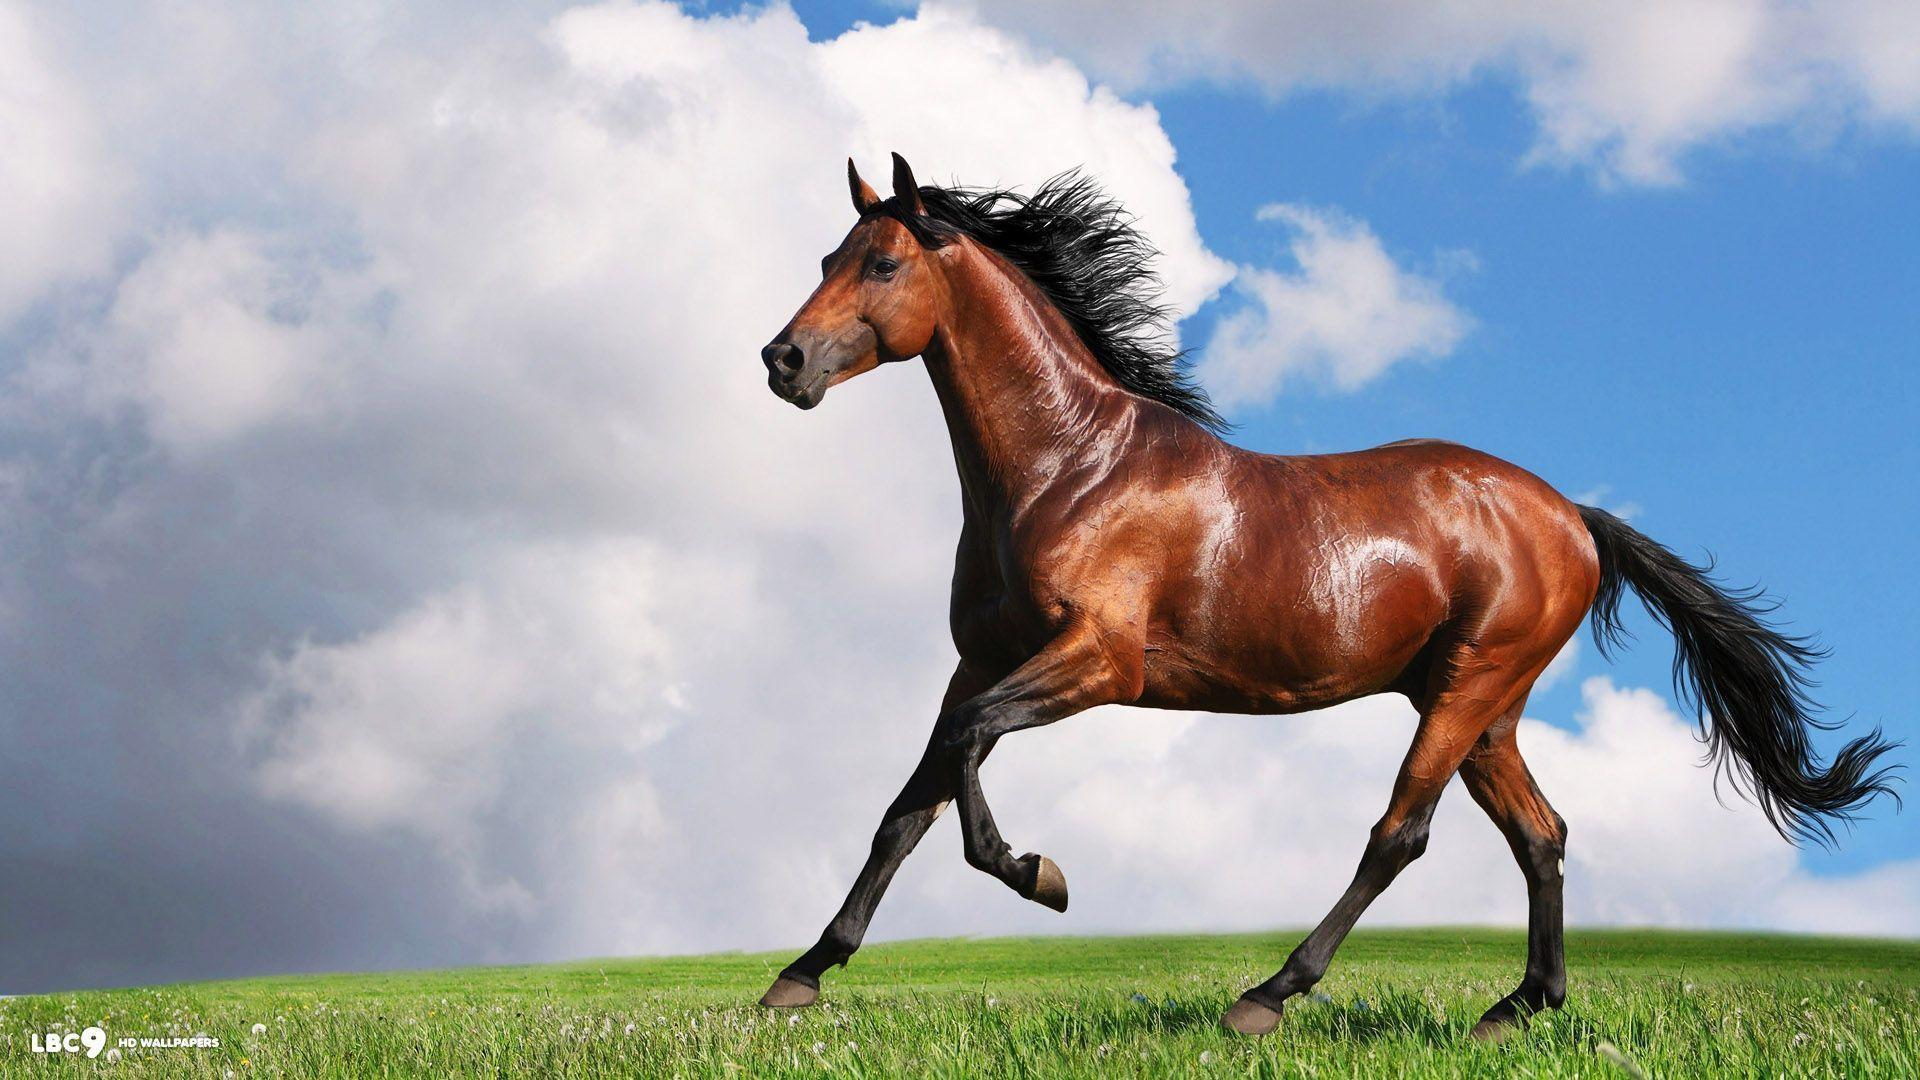 Free horse backgrounds wallpaper cave - Free horse backgrounds ...